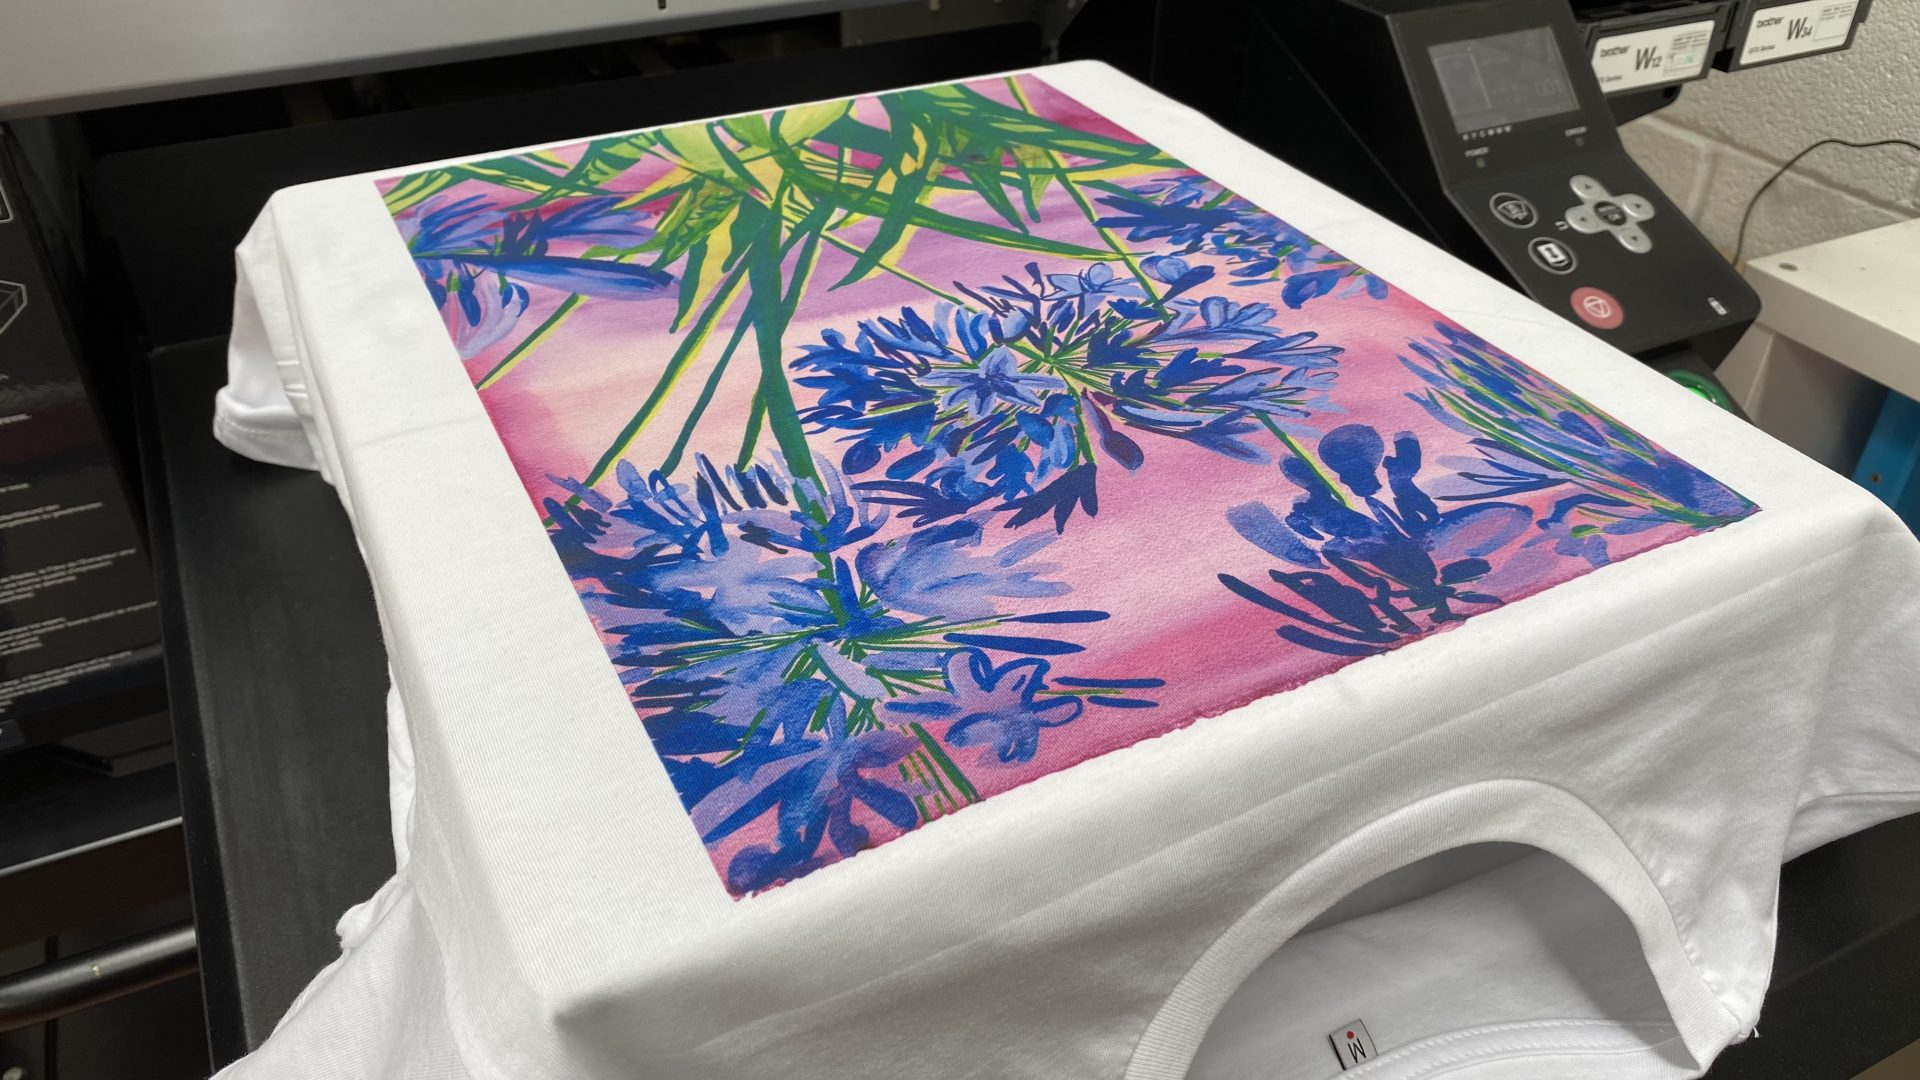 Direct to garment printed t-shirt by Paul Bristow